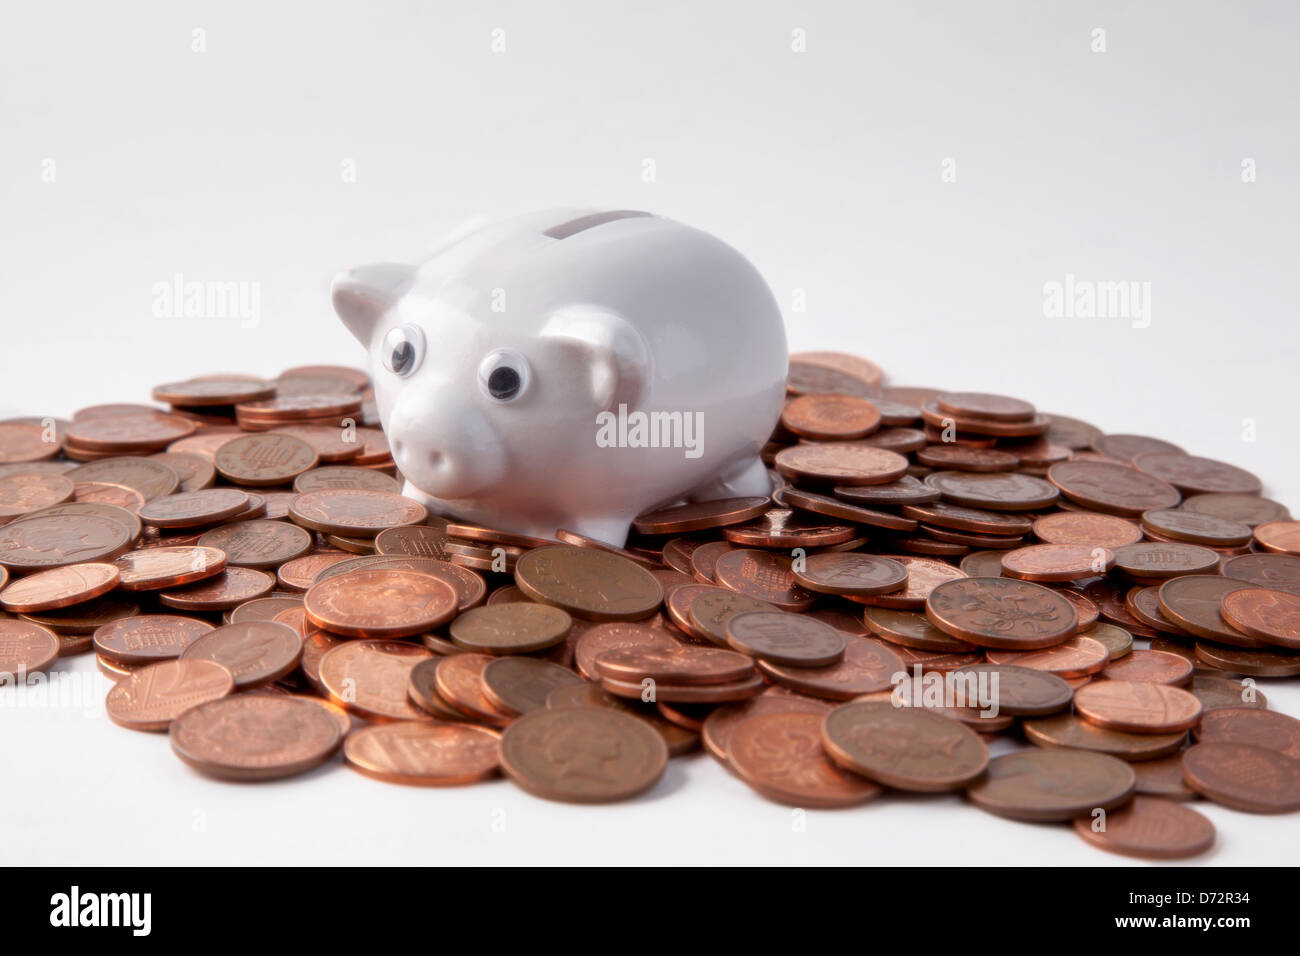 Piggy bank and pennies on white background - Stock Image